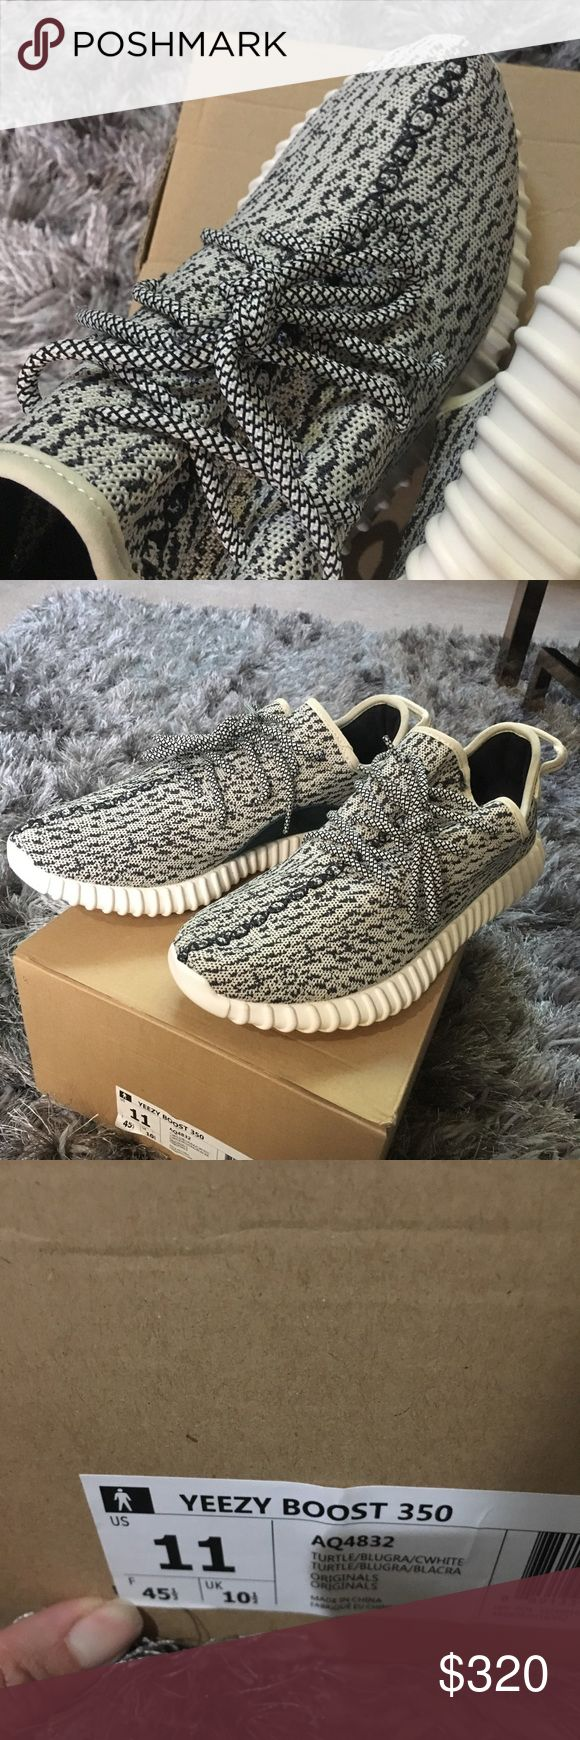 Men Yeezy boost 350 in size 11 Men yeezy boost turtle doove in size 22. Never worn brand new . Purchase them for $600 off of eBay. Yeezy Shoes Sneakers